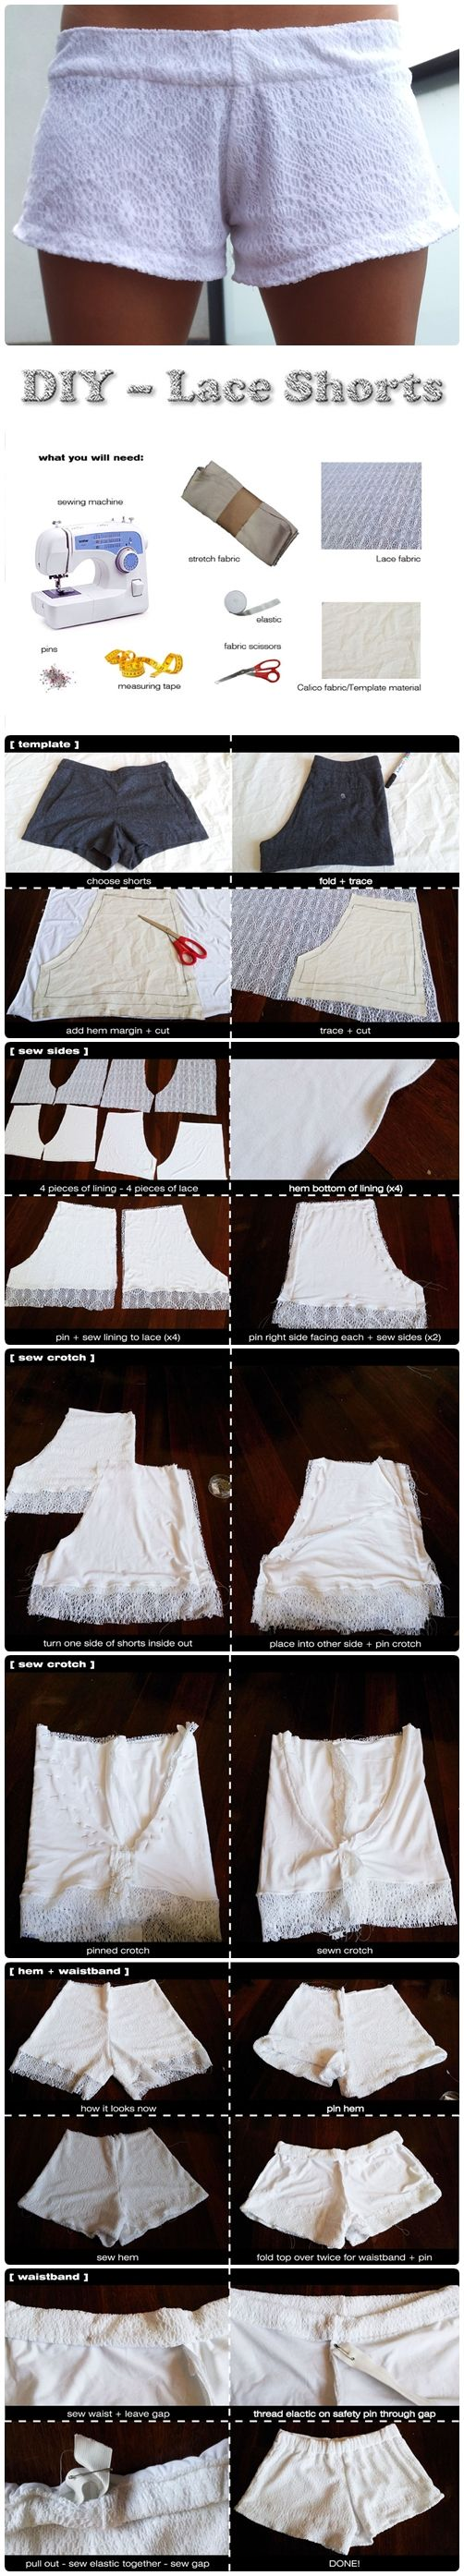 DIY – Lace Shorts (step by step guide pictures of how to put these together. I'm making them. Just love the look of them! FMTK)